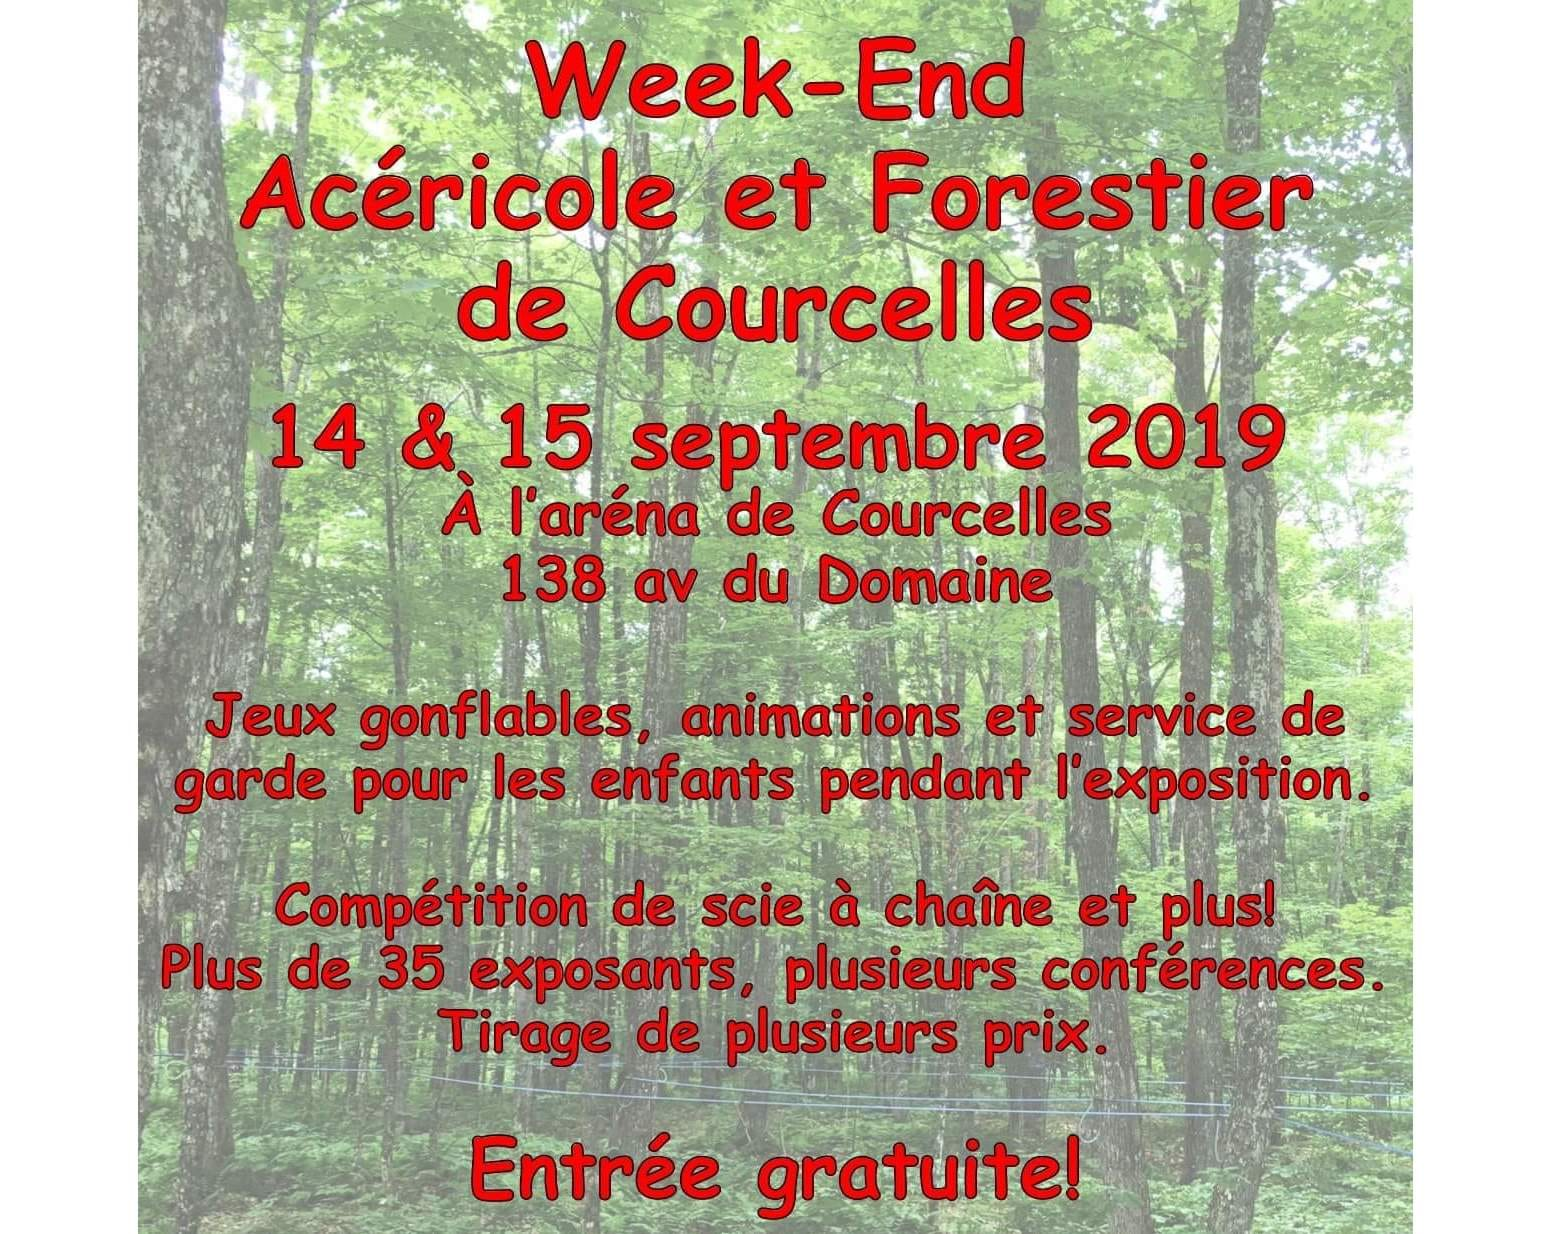 Week-end acéricole et forestier de Courcelles